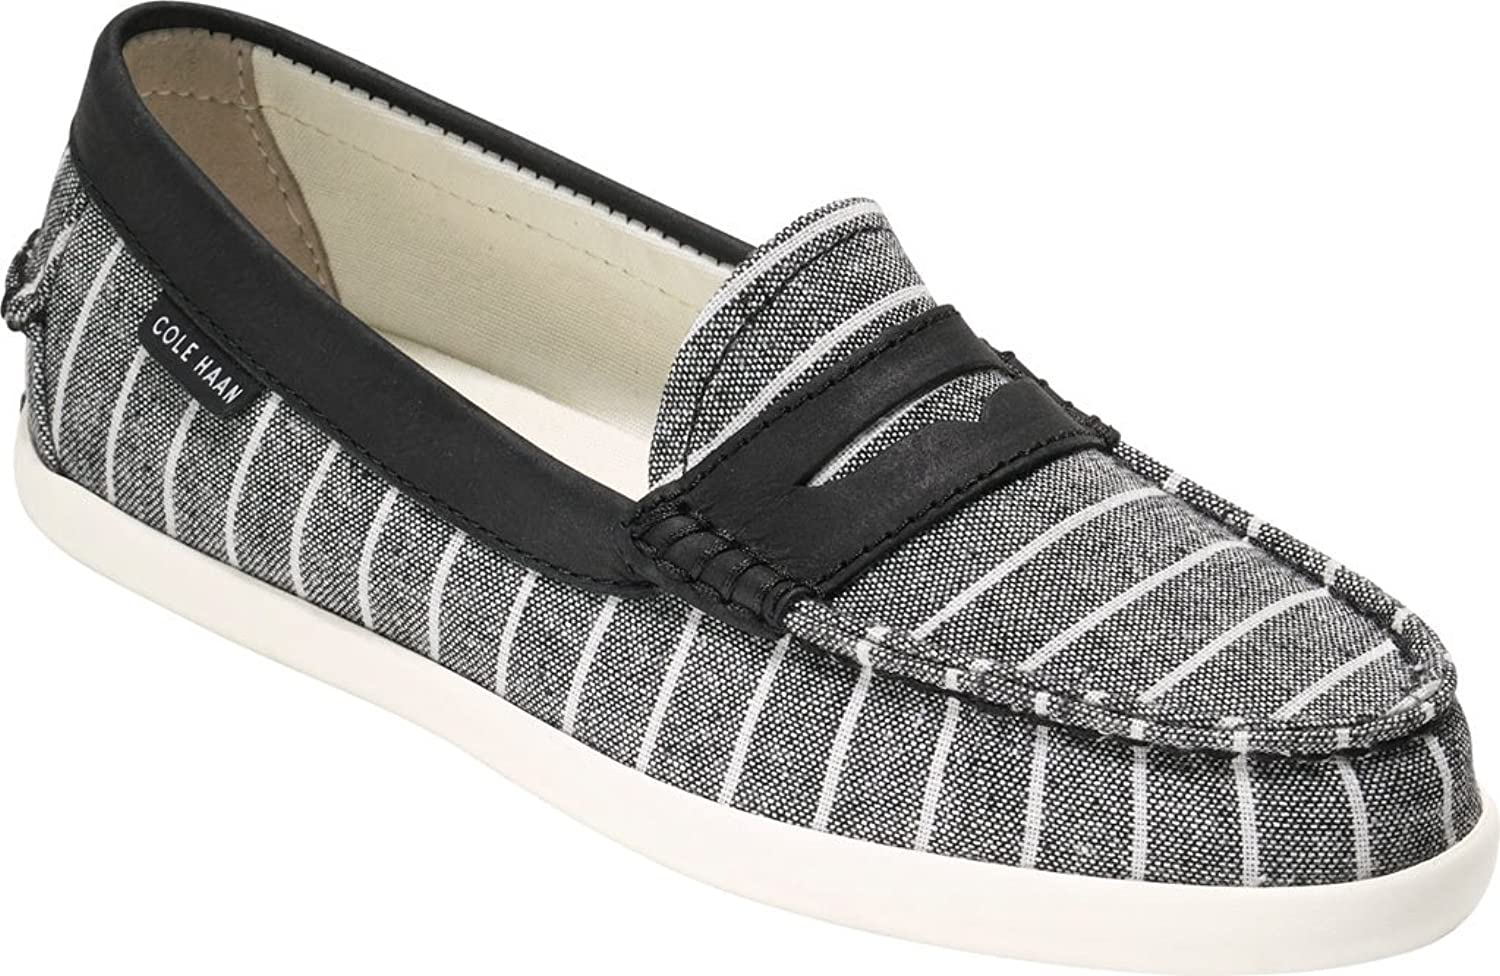 Cole Haan Women's Pinch Weekender Penny Loafer Boat Shoe